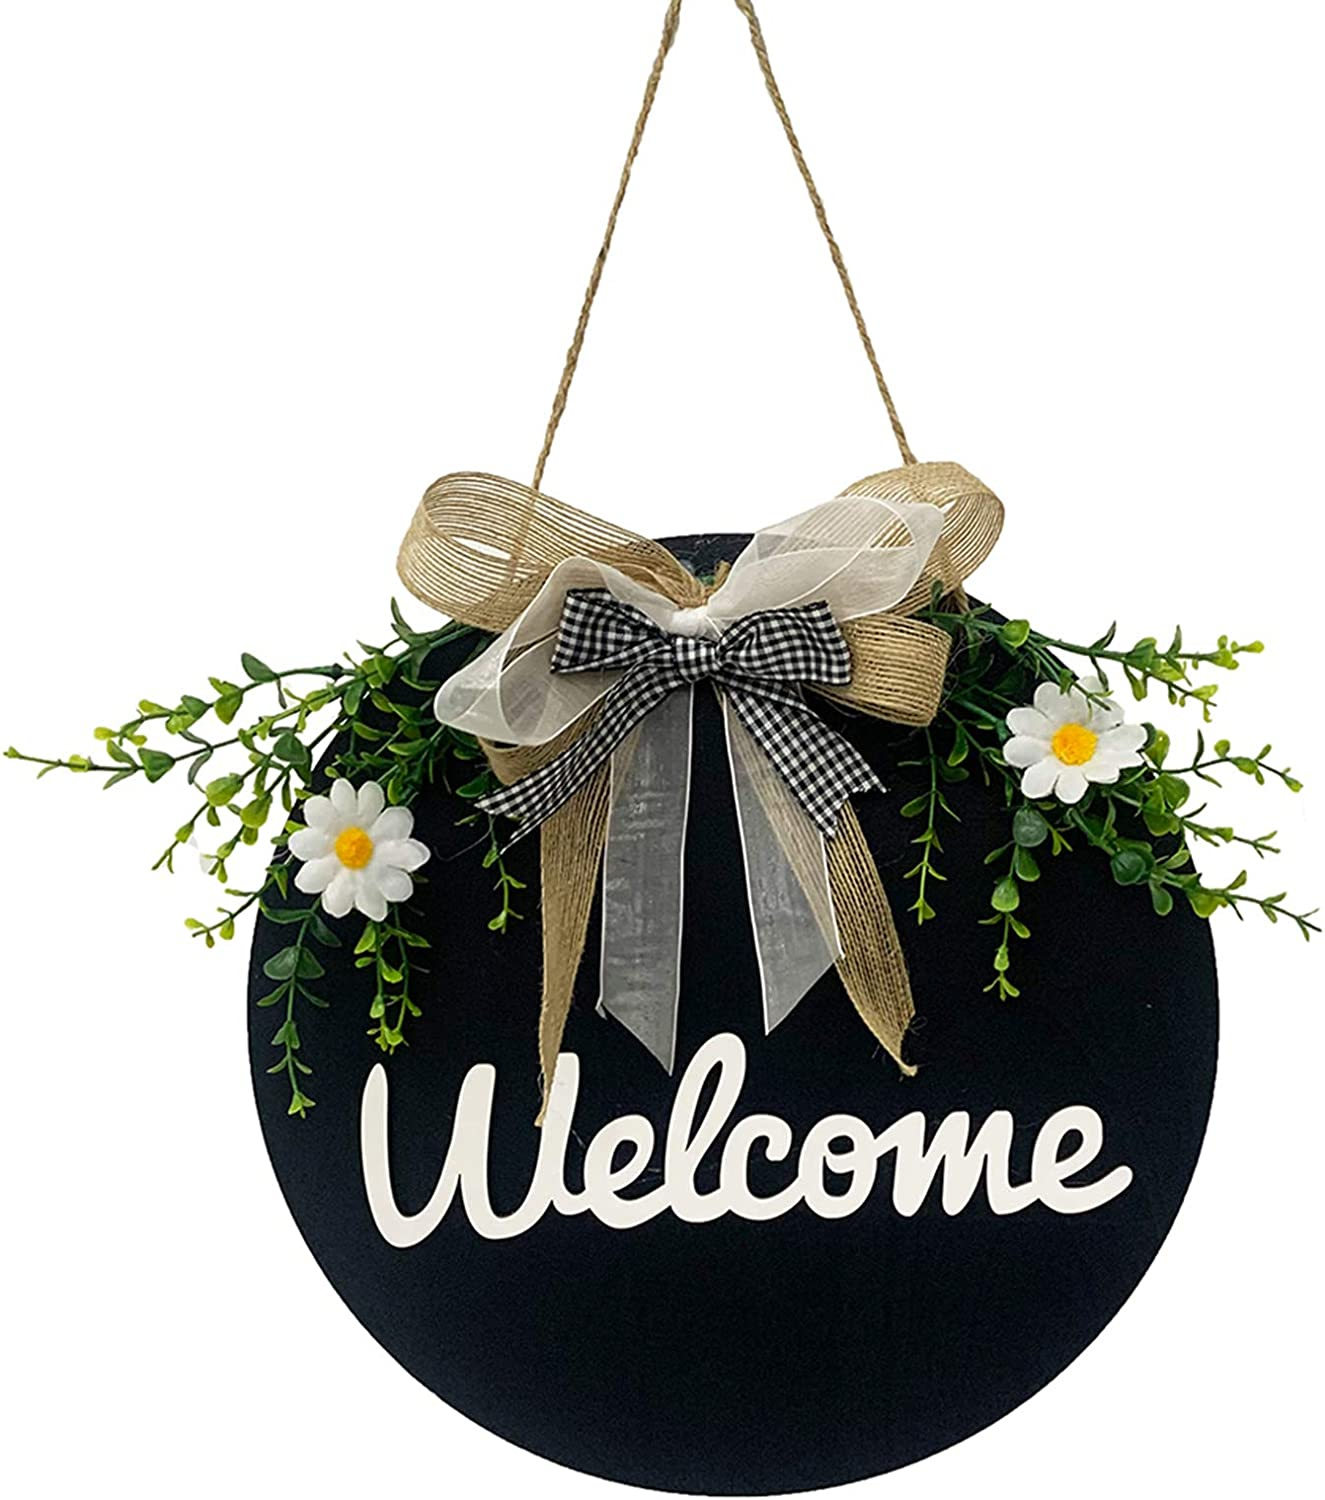 Welcome Sign Porch Decor, Round Wood Welcome Door Sign Hanging Welcome Wreath Sign Front Door Wall Decor for Daily Coffee Shop, Farmhouse, Restaurant, Home, Outdoor